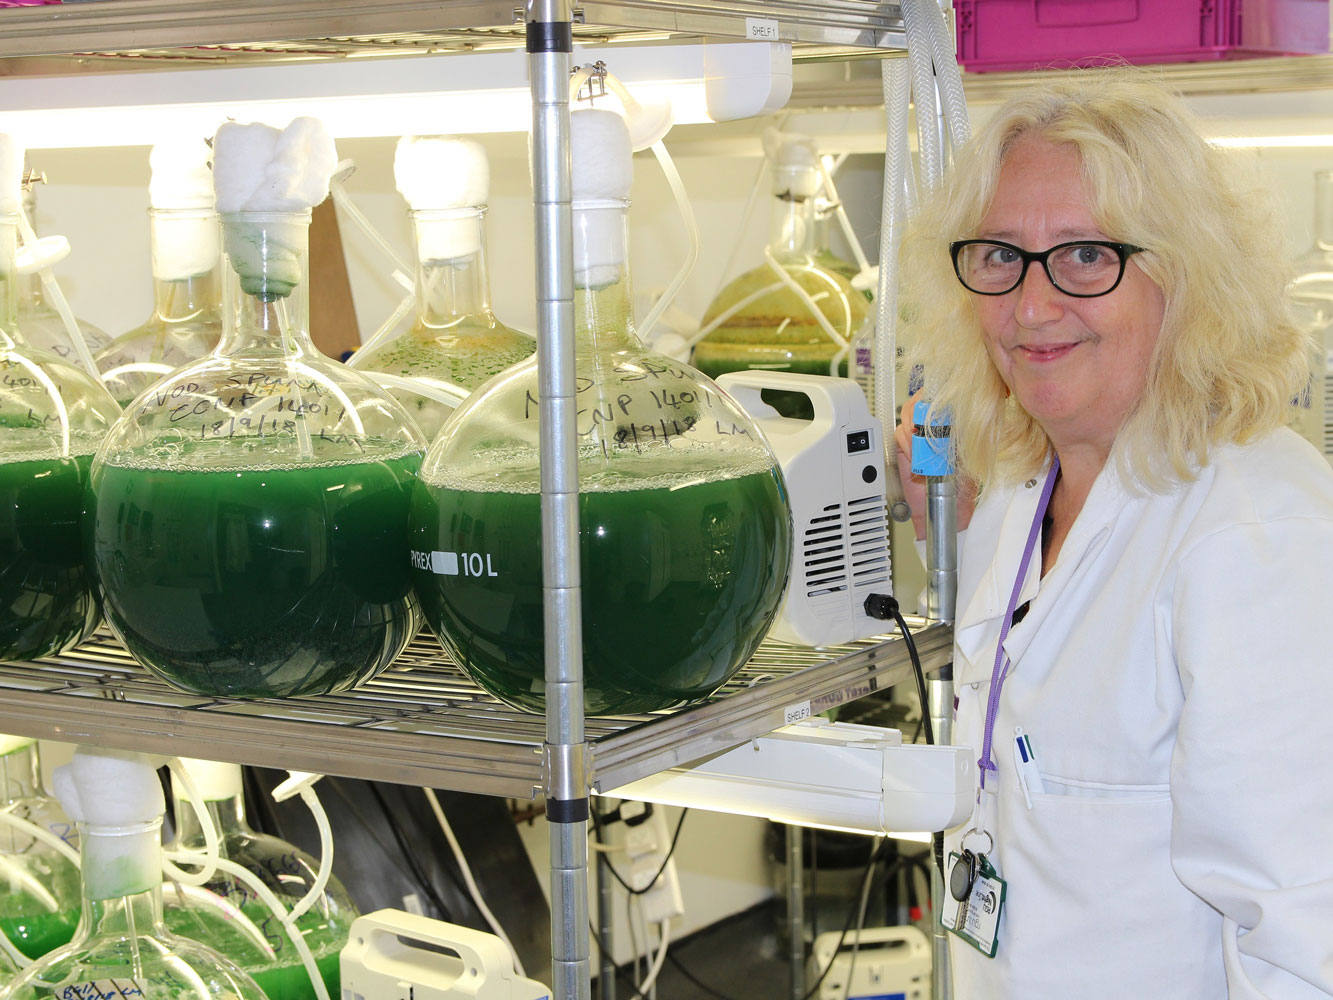 Leading microbiologist brings millions to North-east to protect public health